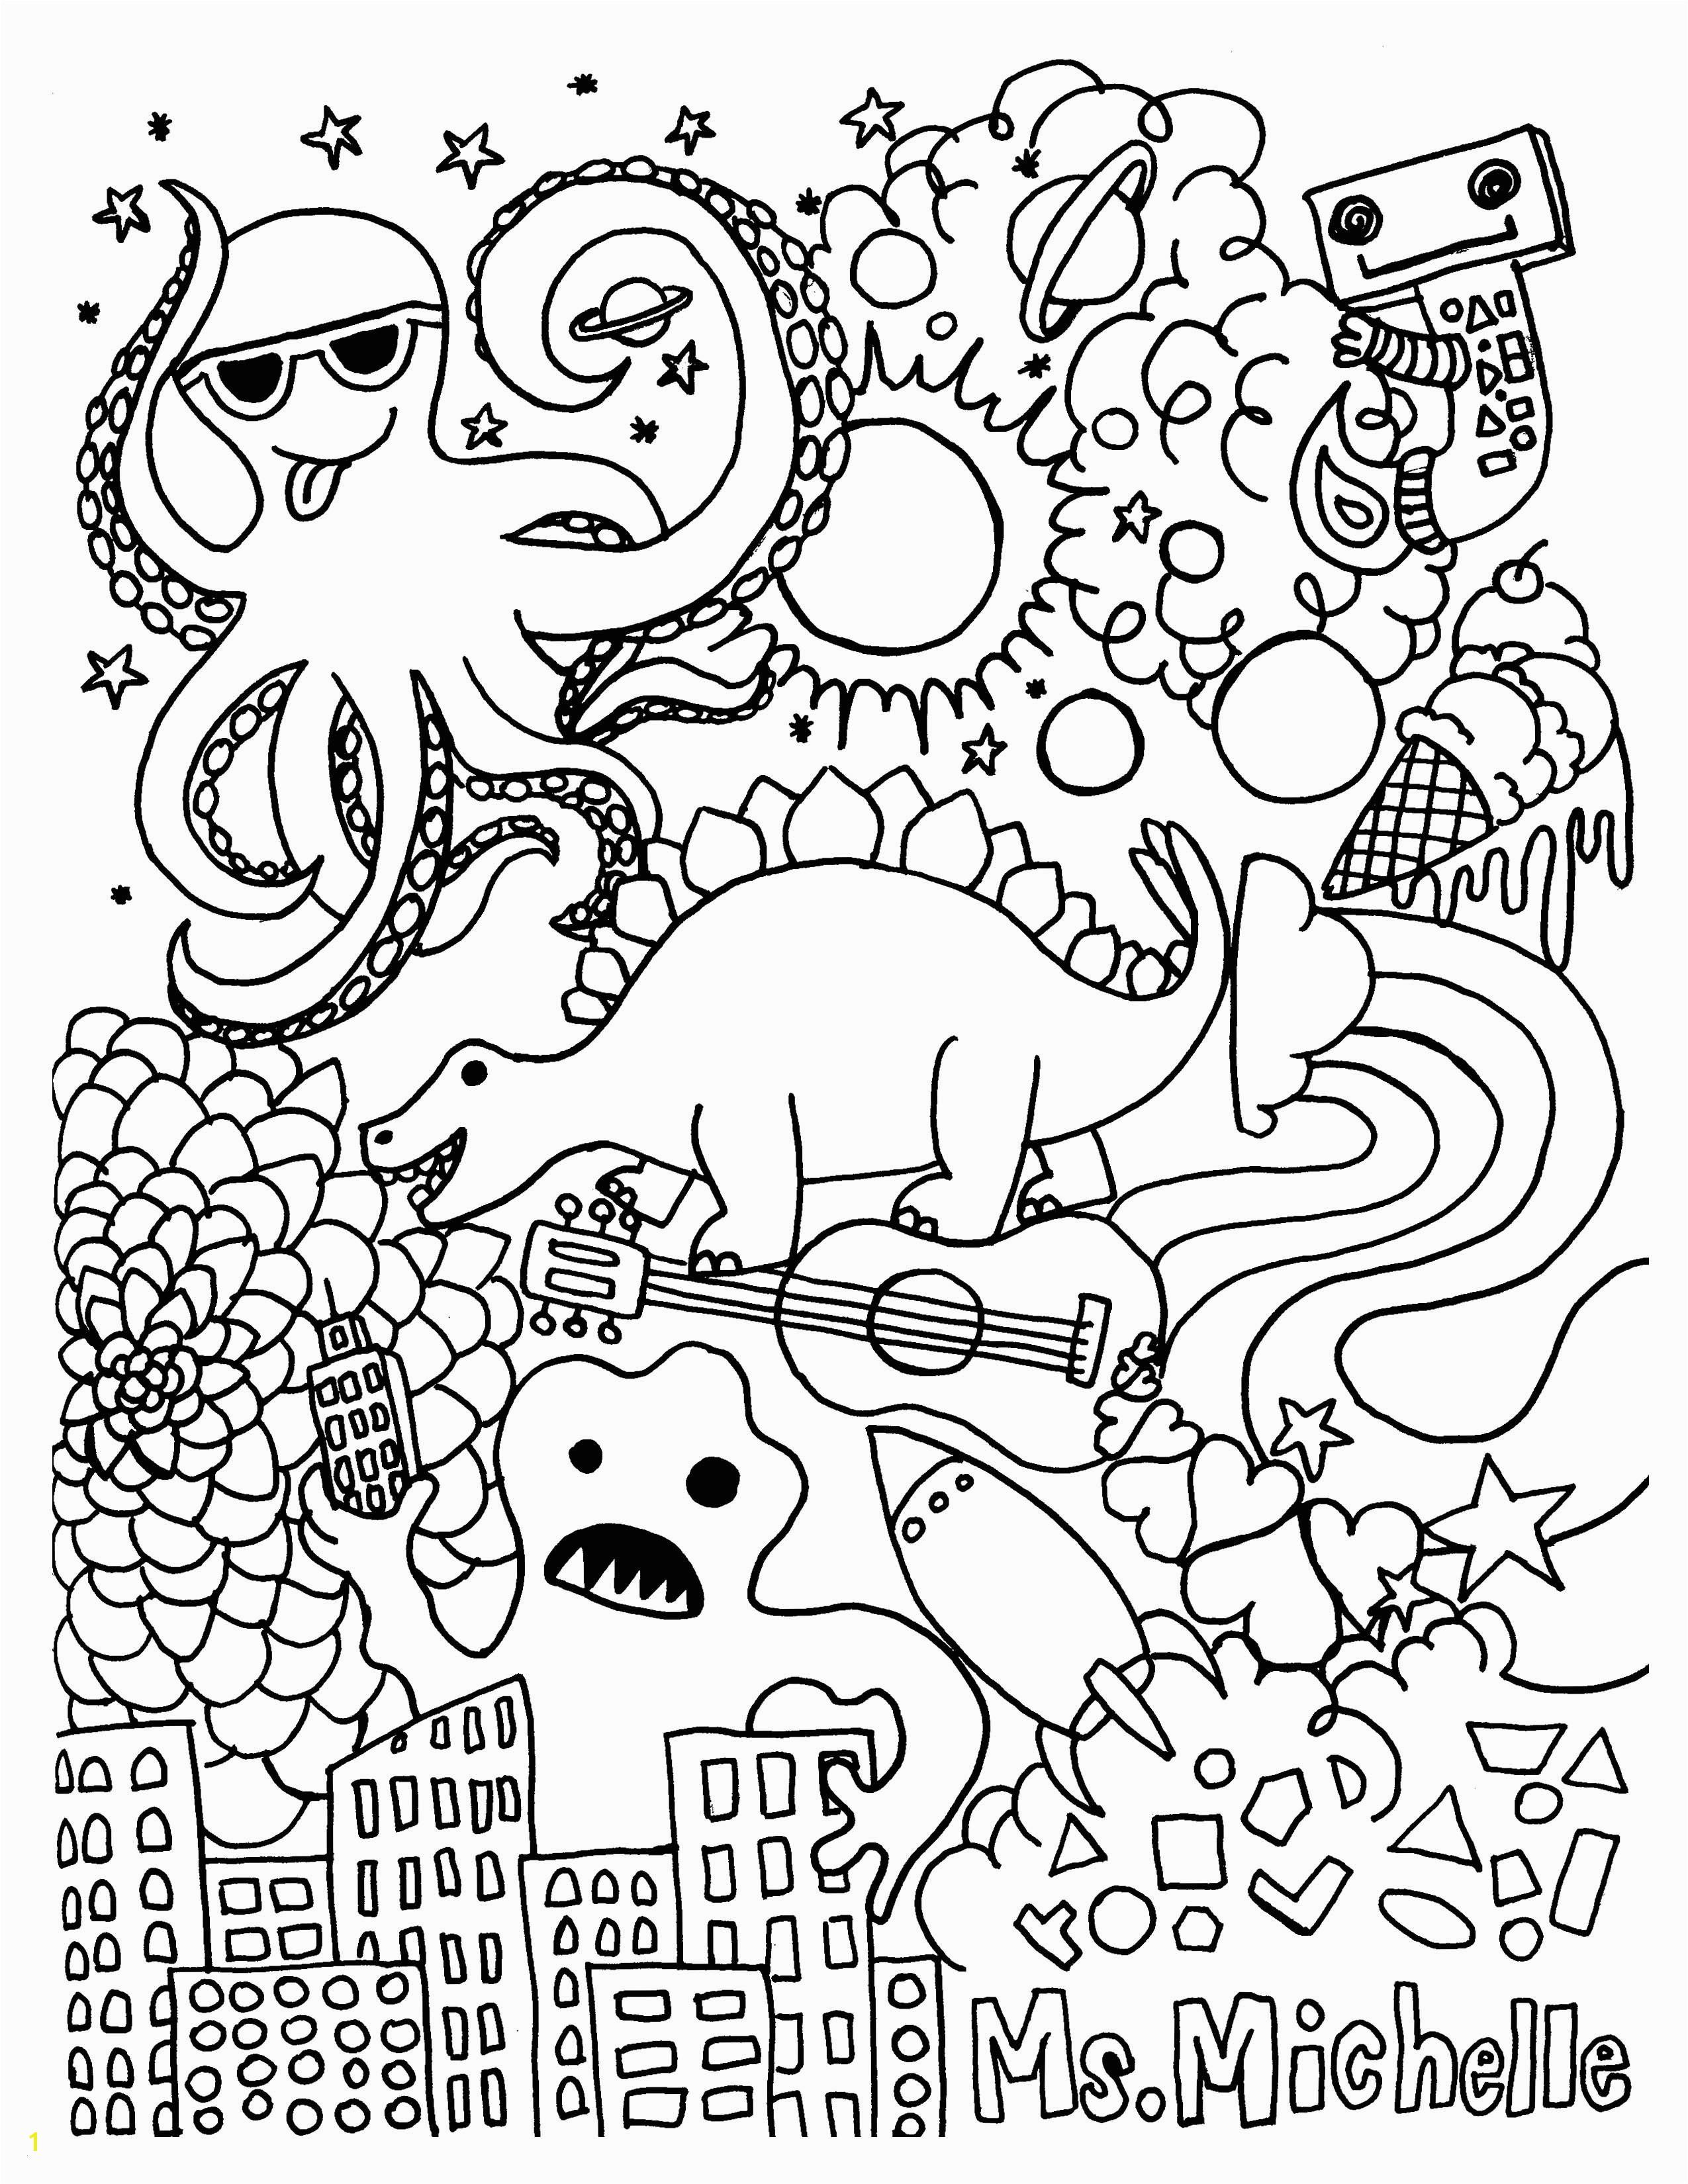 Boxing Gloves Coloring Pages